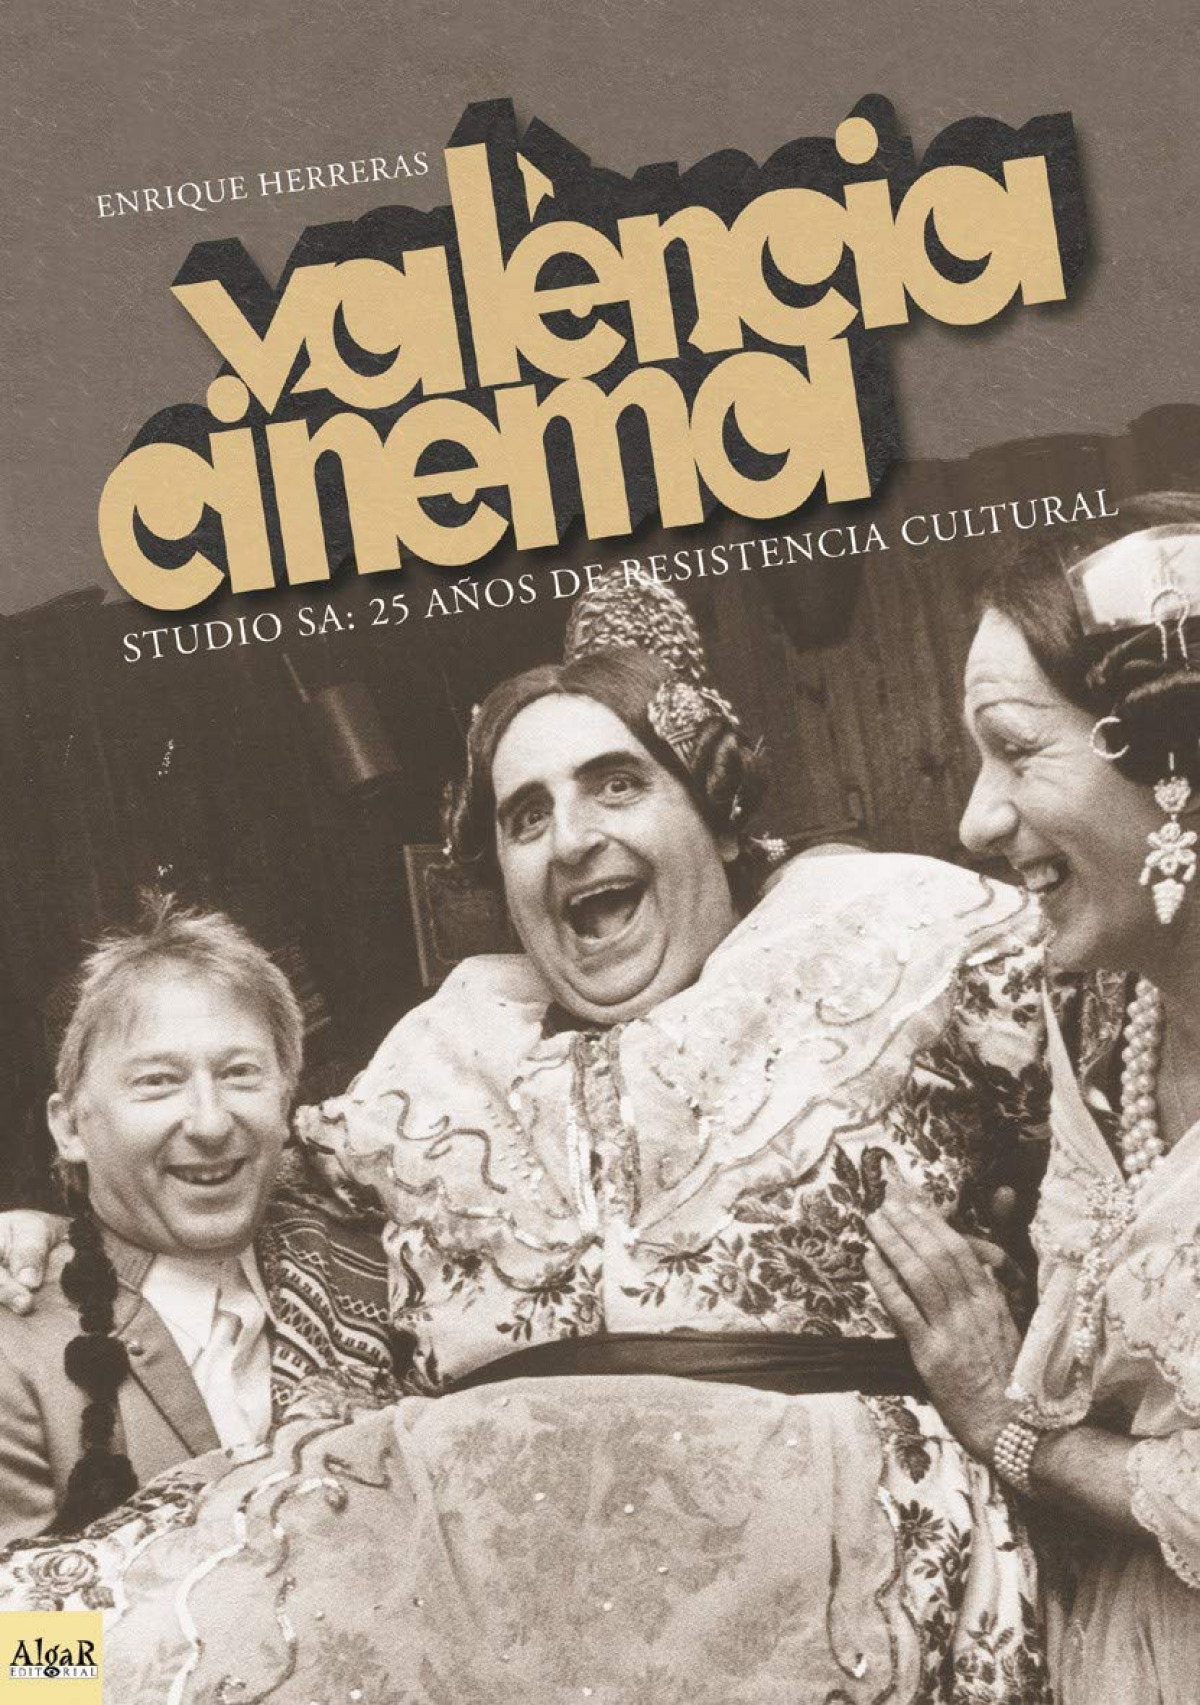 VALENCIA CINEMA